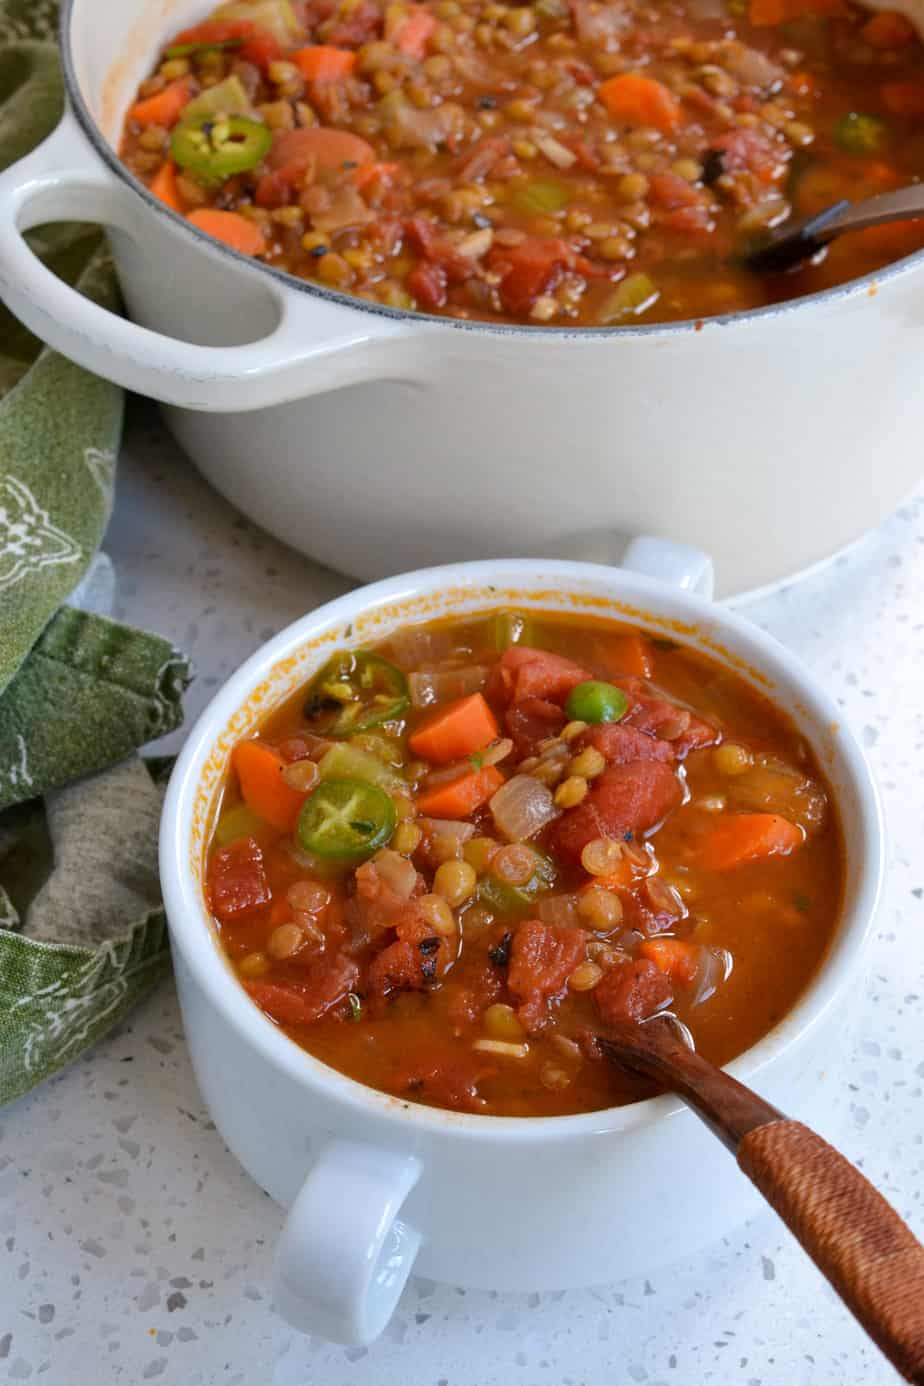 A bowl full of vegan lentil vegetable soup with tomatoes, carrots, onion, and celery.